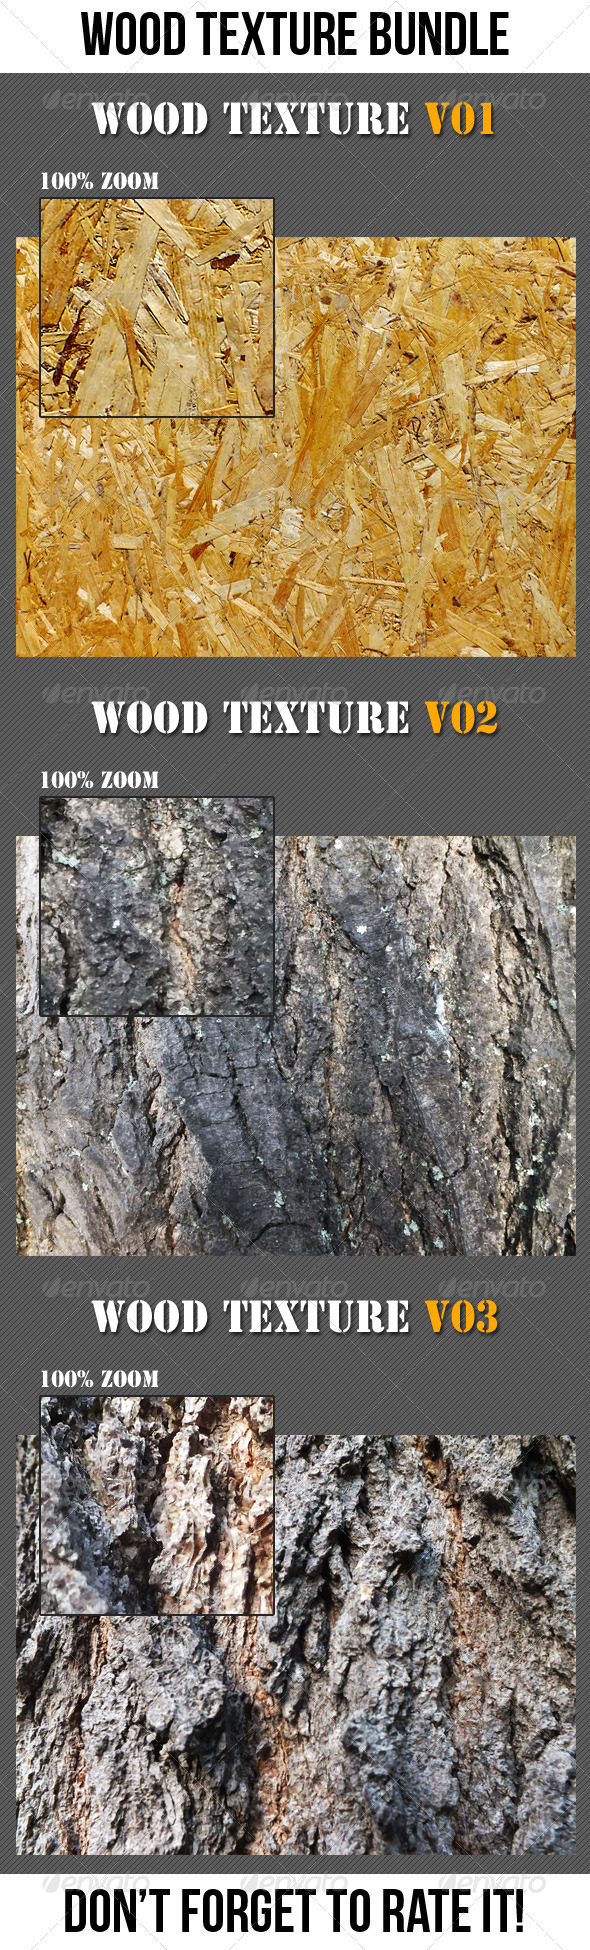 Wood Texture Bundle - Wood Textures